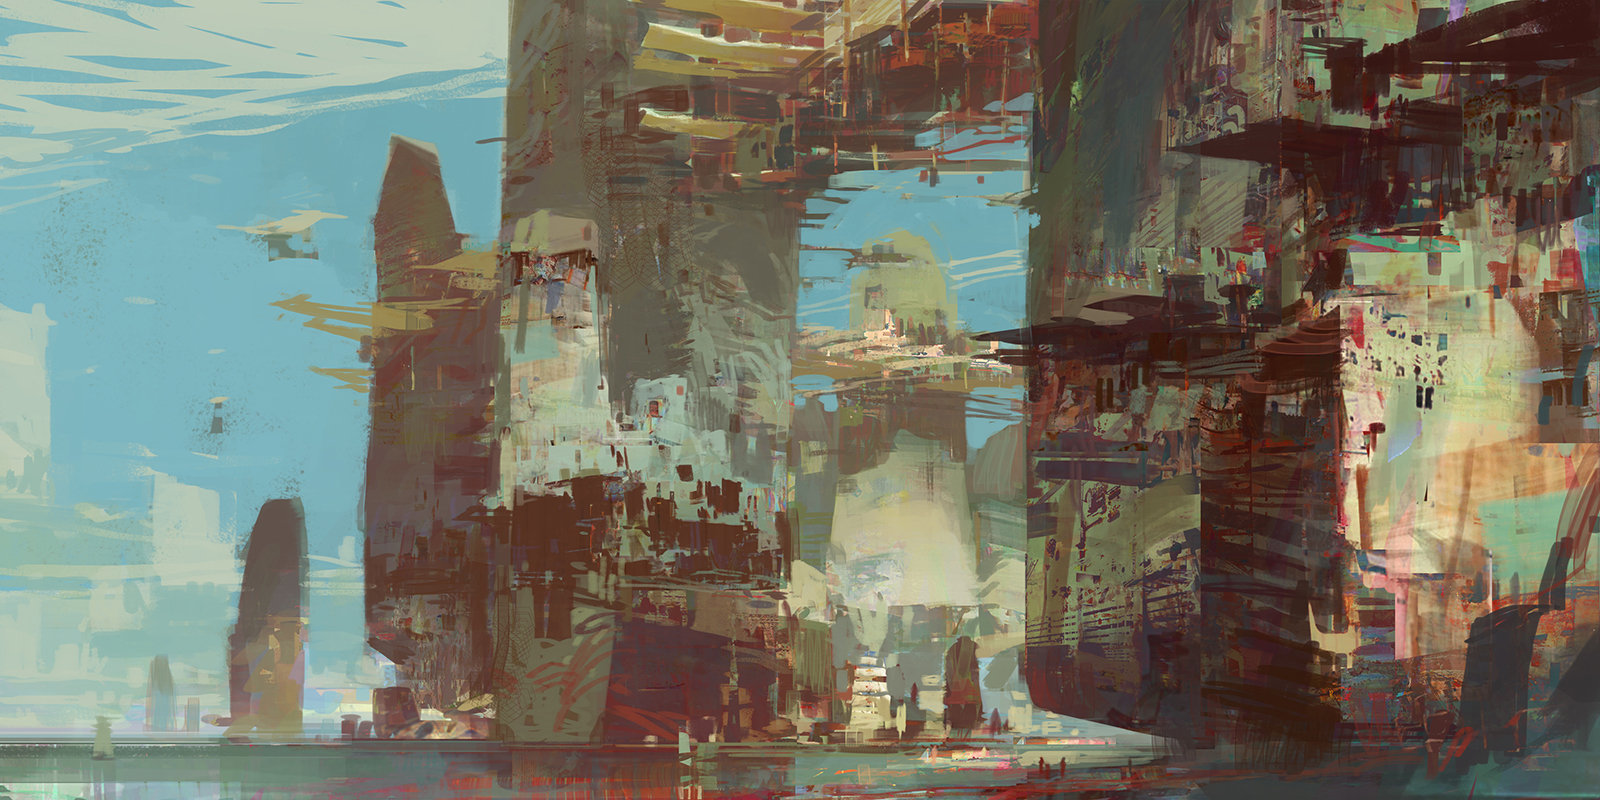 theo prins digital painting concept art guild wars 2 Kite City